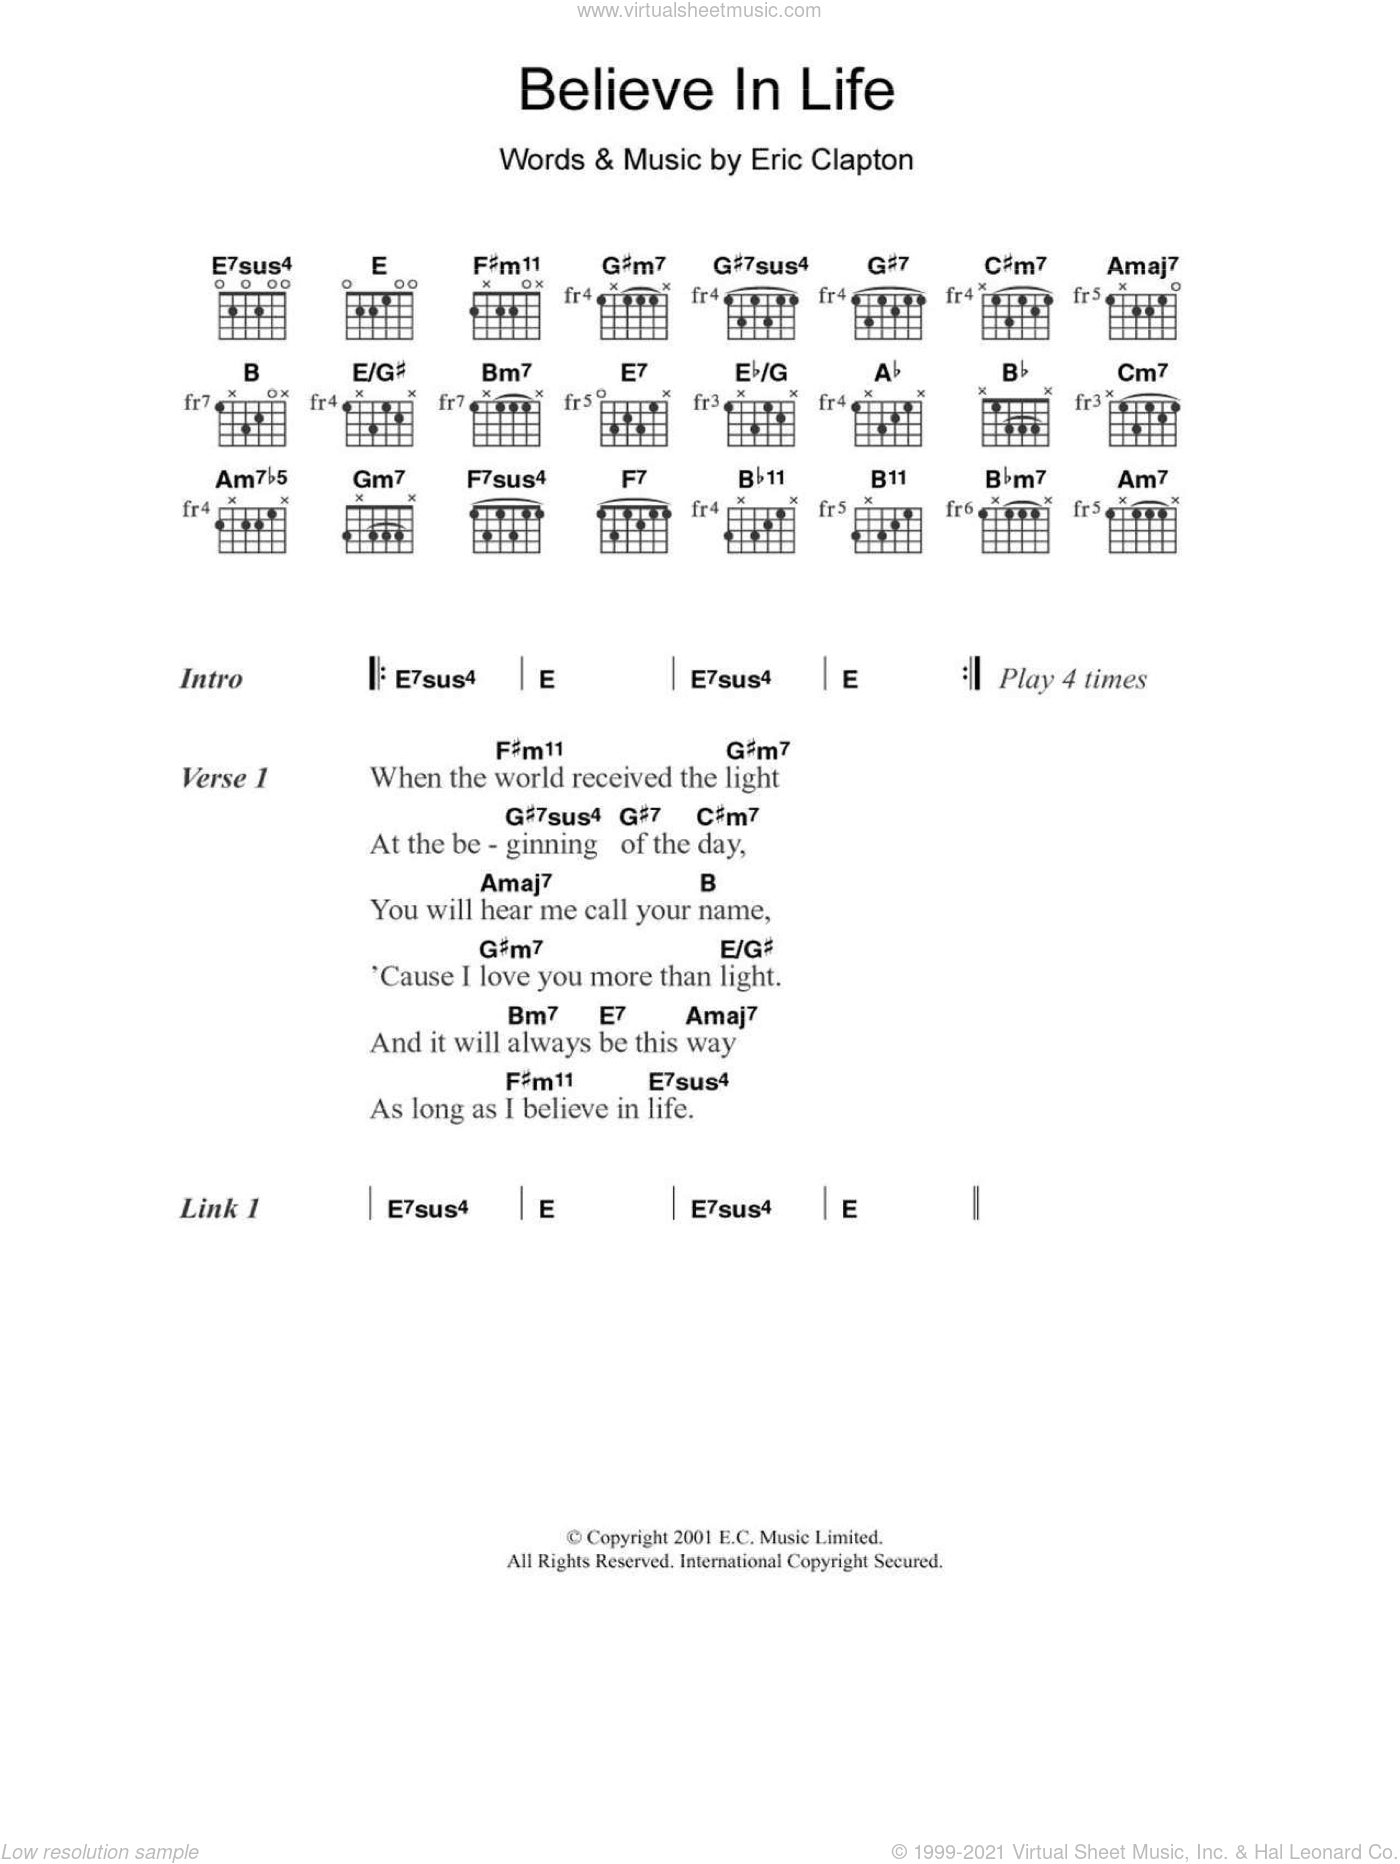 Believe In Life sheet music for guitar (chords) by Eric Clapton